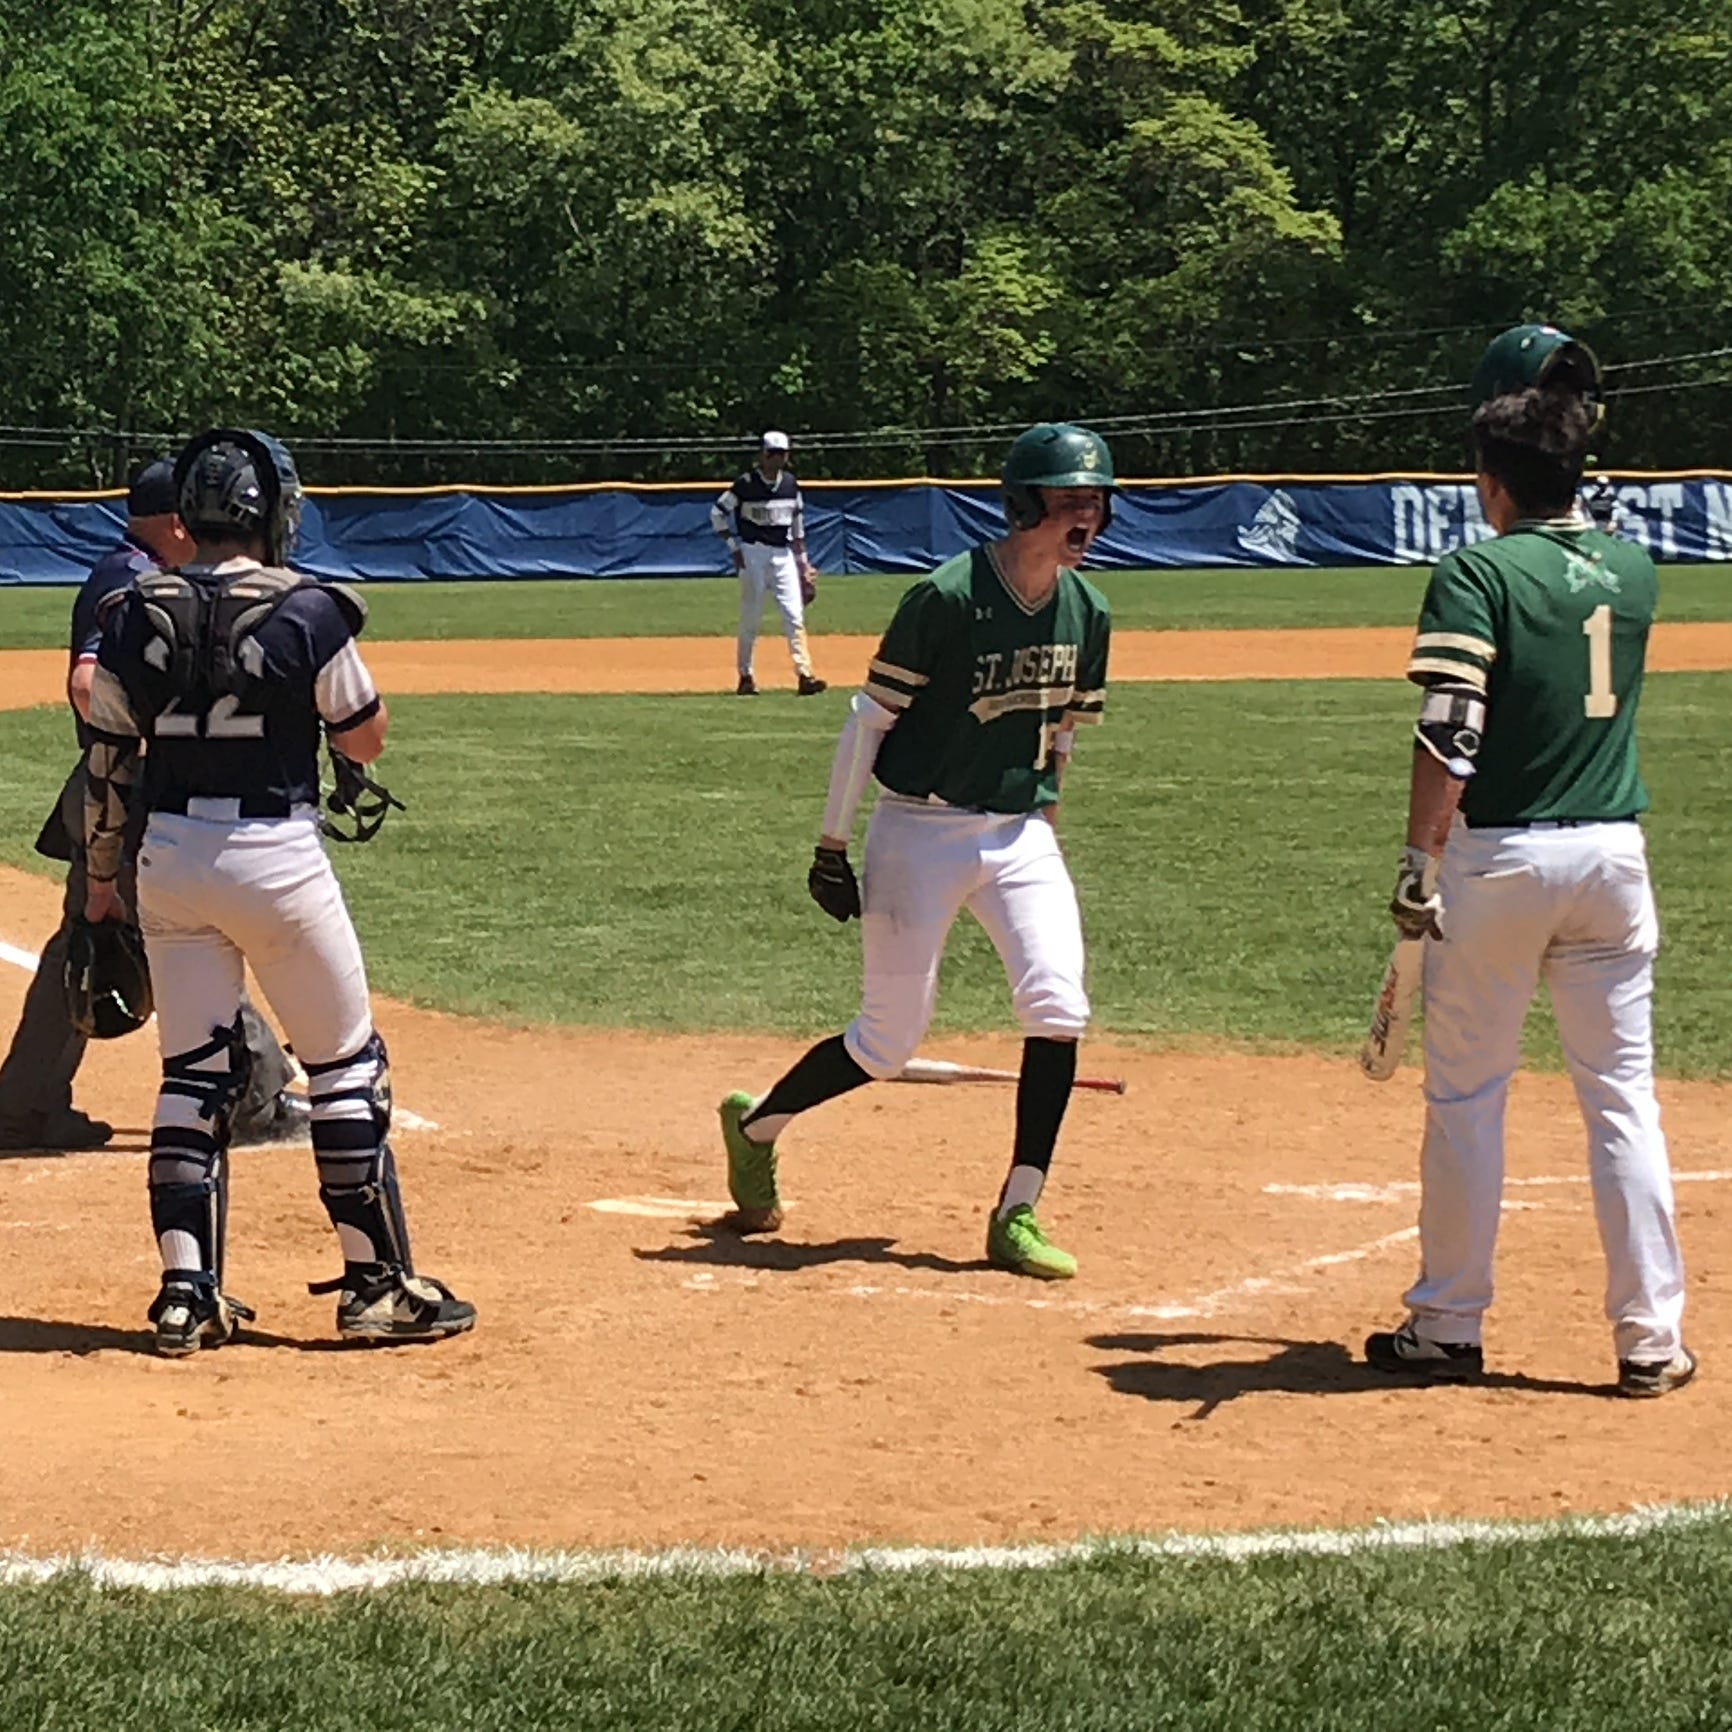 Baseball: St. Joseph, Ridgewood set for Bergen County rematch 33 years in the making